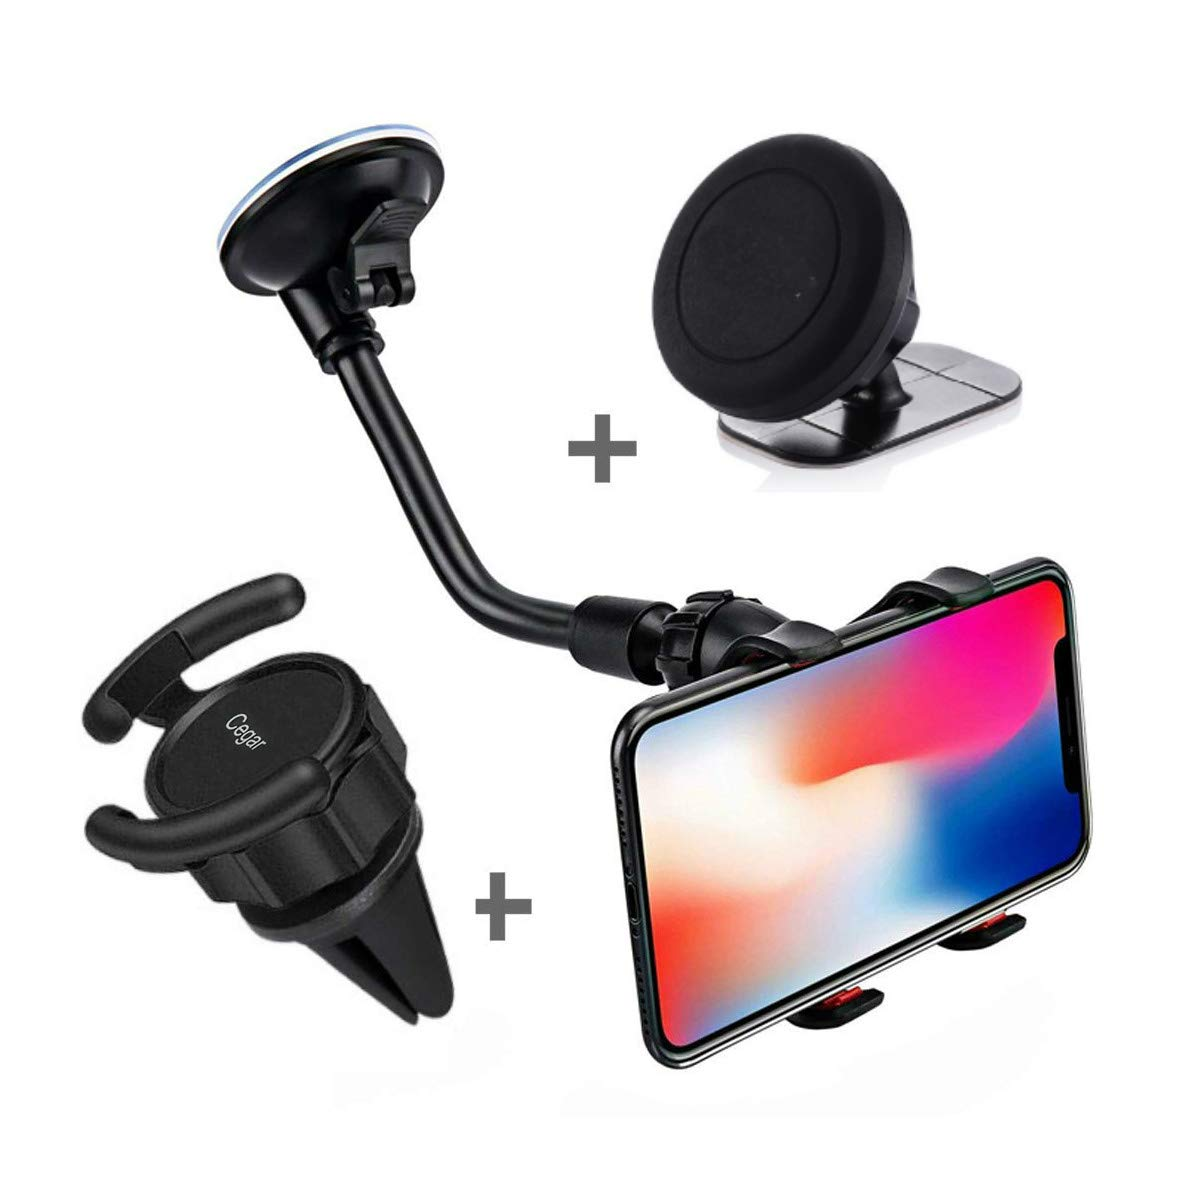 Cegar Car Phone Mount 5-in-1Universal Phone Holder Air Vent Car Mount Holder Dashboard Mount Windshield Mount for GPS Navigation and Any Smartphone 4351488867